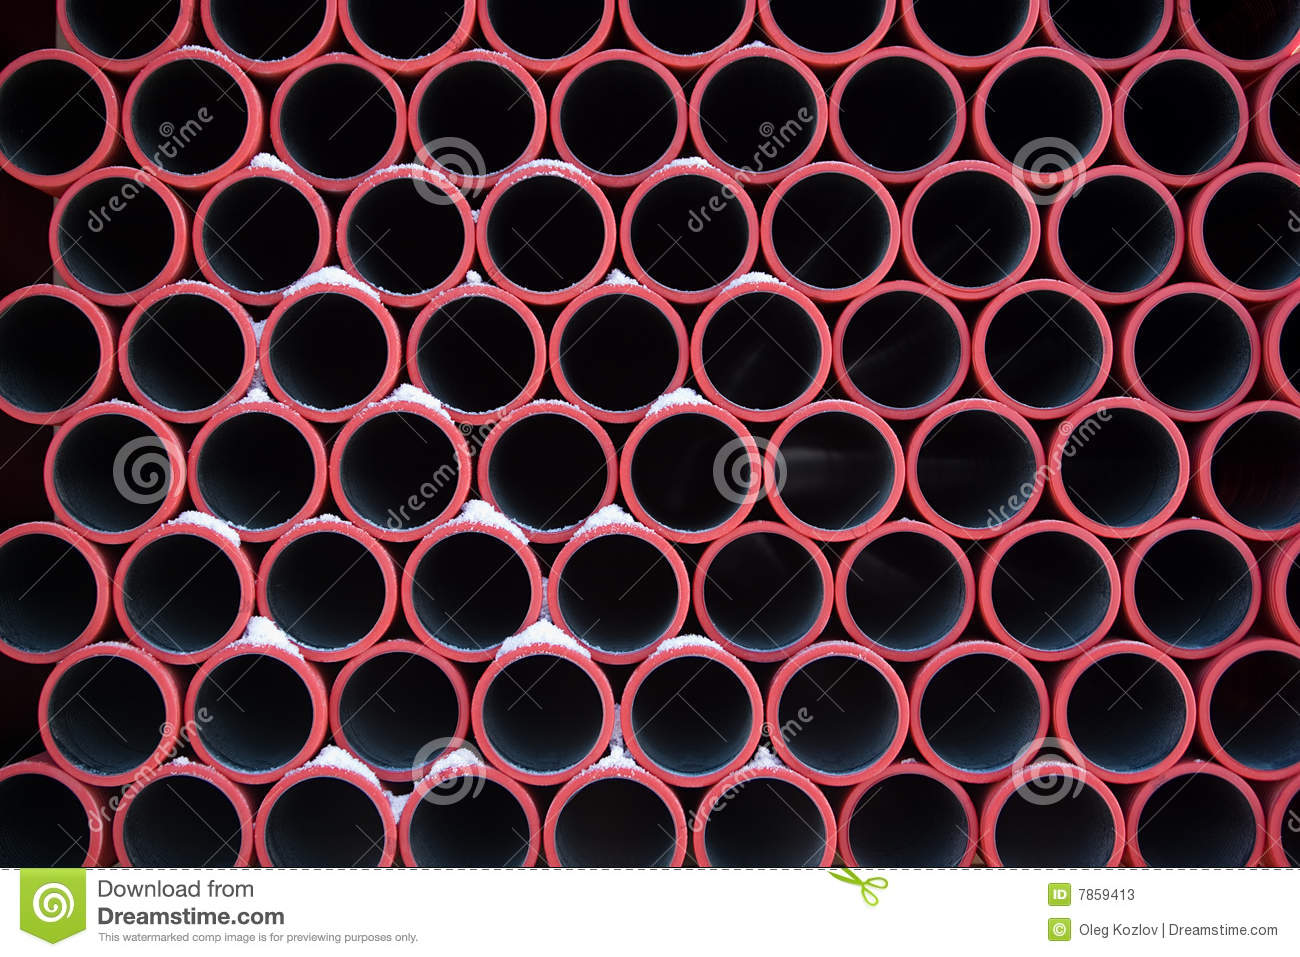 Red pipes pattern